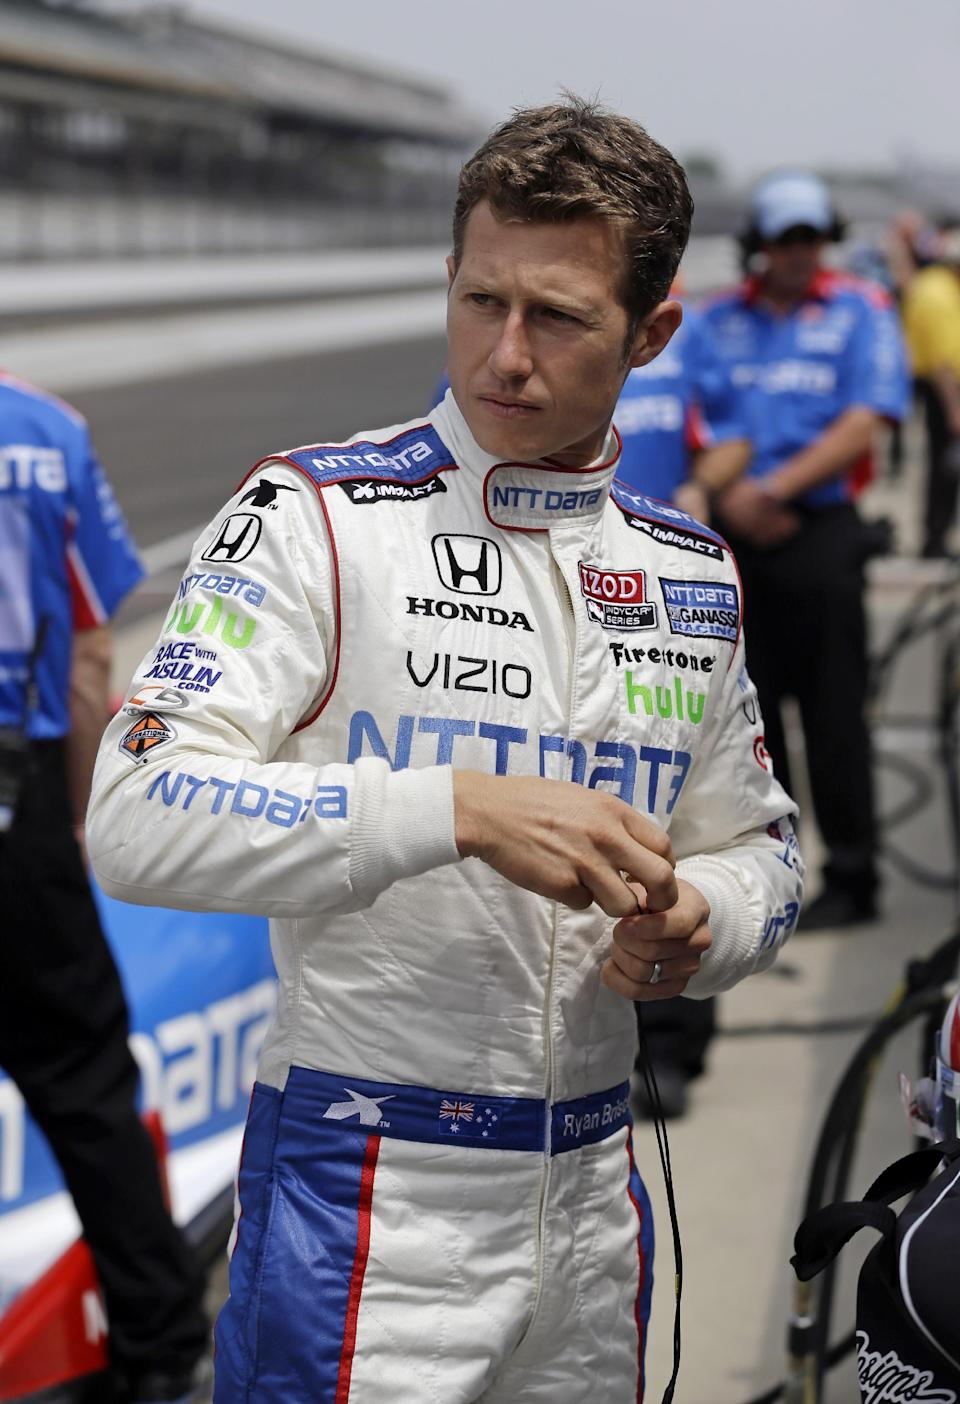 Ryan Briscoe, of Australia, looks down the pit lane as he waits for the start of practice for the Indianapolis 500 auto race at the Indianapolis Motor Speedway in Indianapolis, Friday, May 17, 2013. (AP Photo/Darron Cummings))